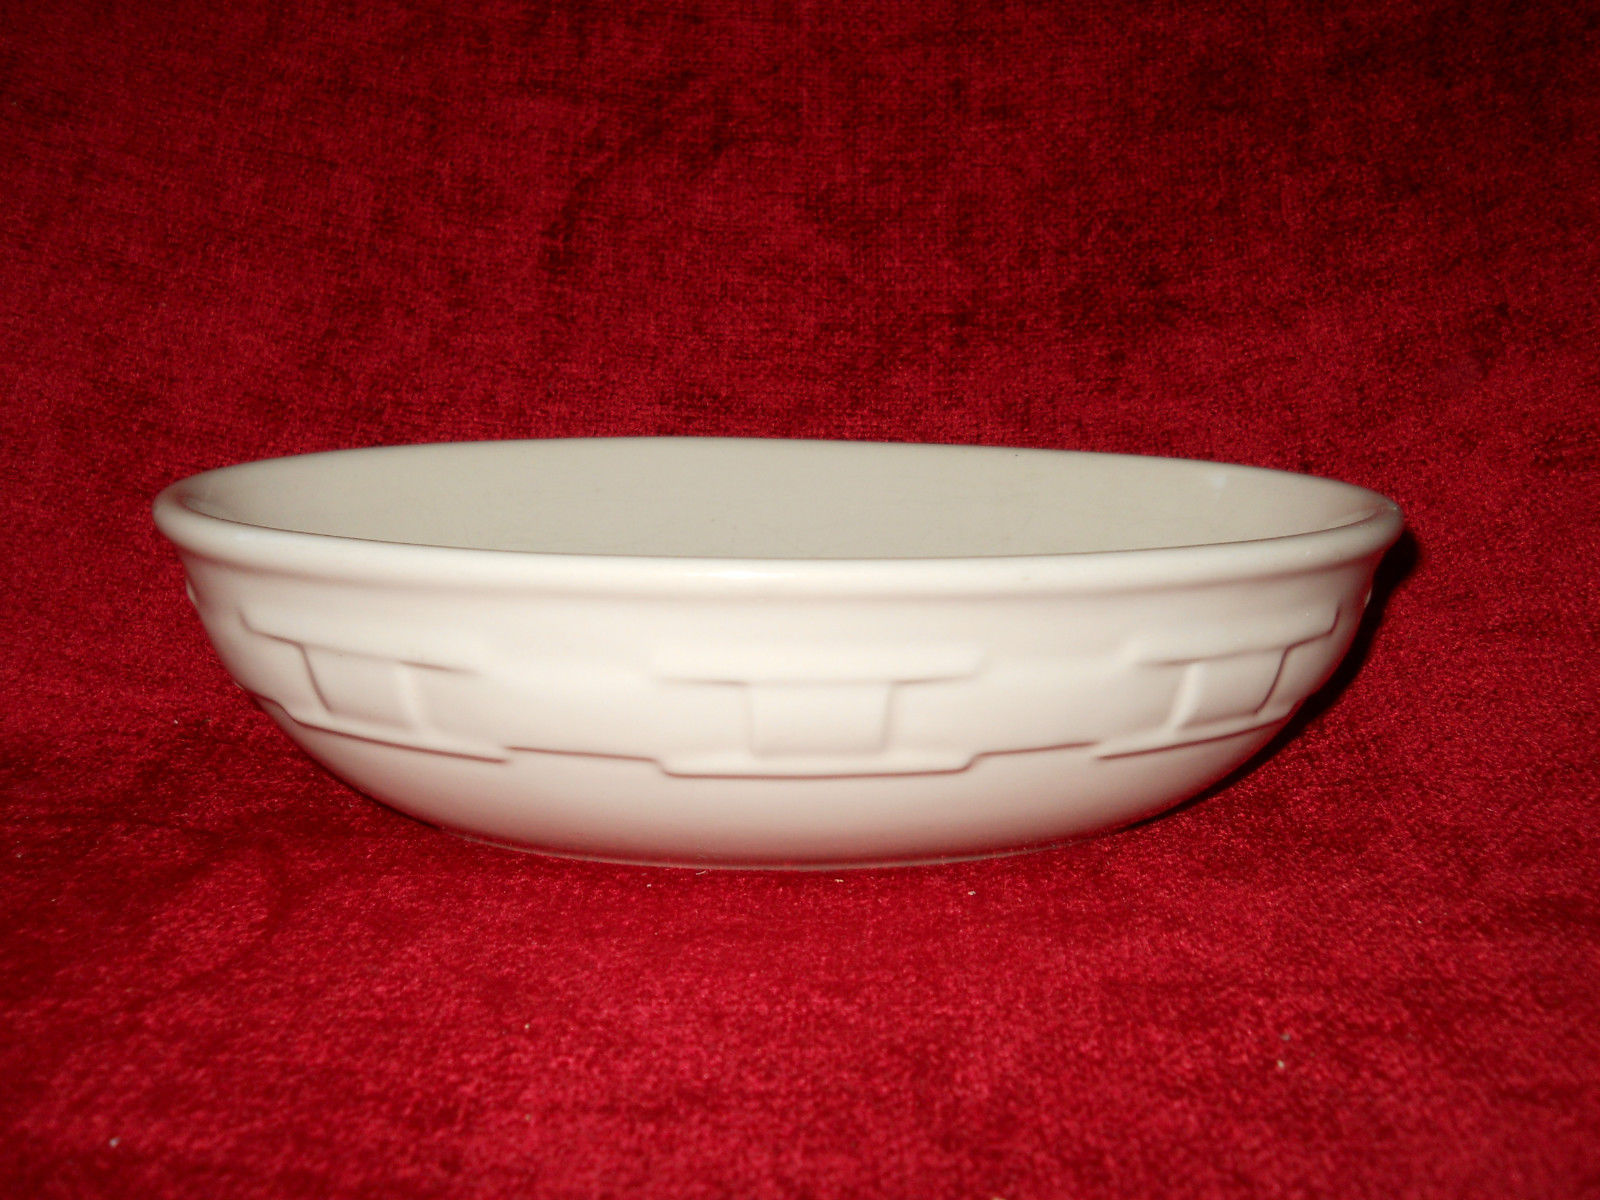 Primary image for Longaberger woven traditions ivory oval serving bowl